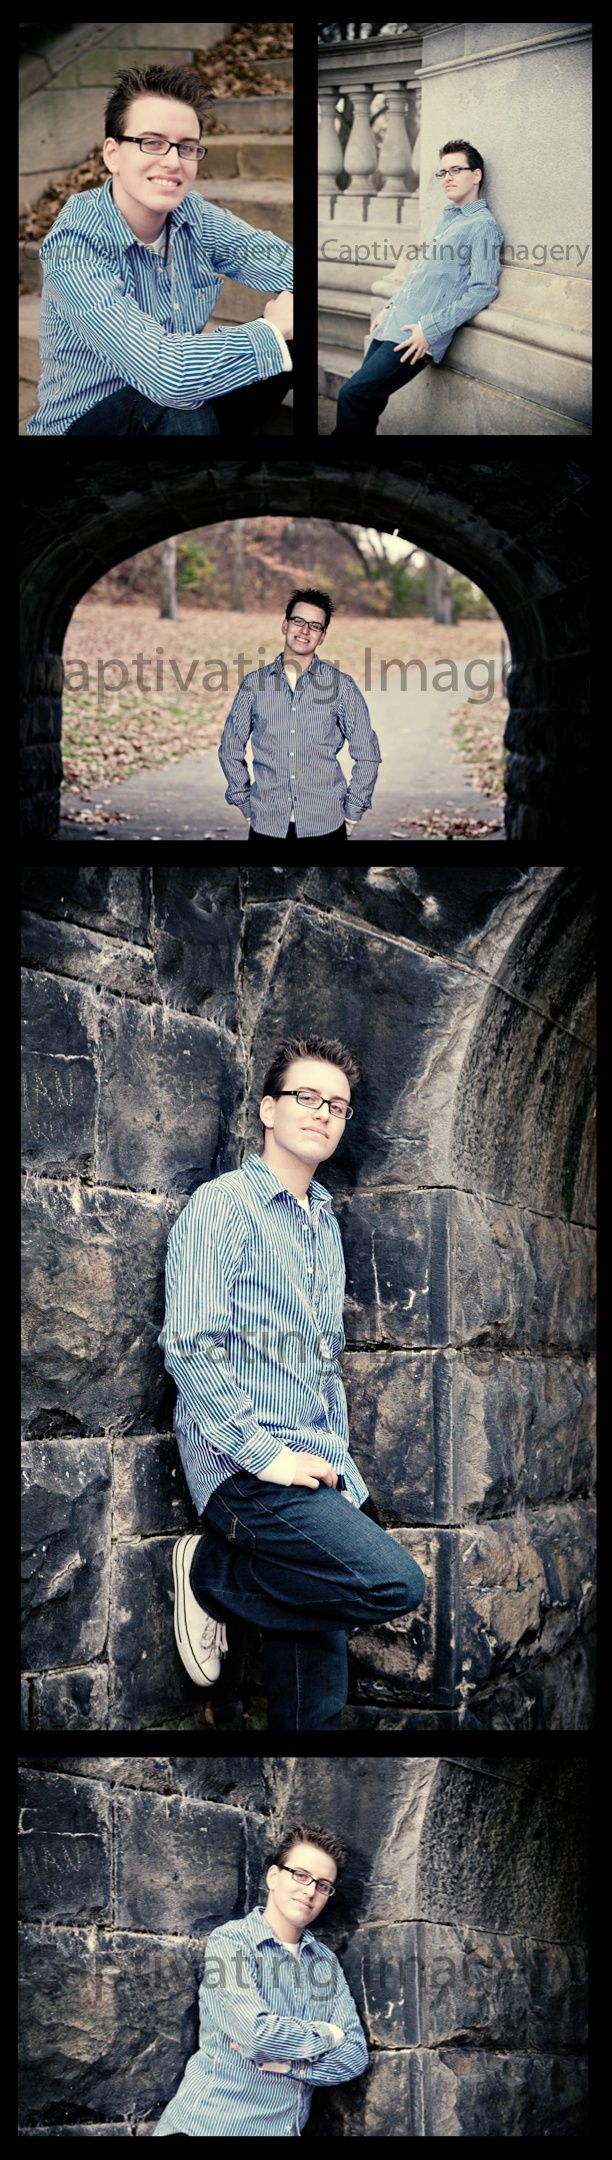 senior picture ideas for guys   ideas for senior pictures for guys - Bing Images   craft projects